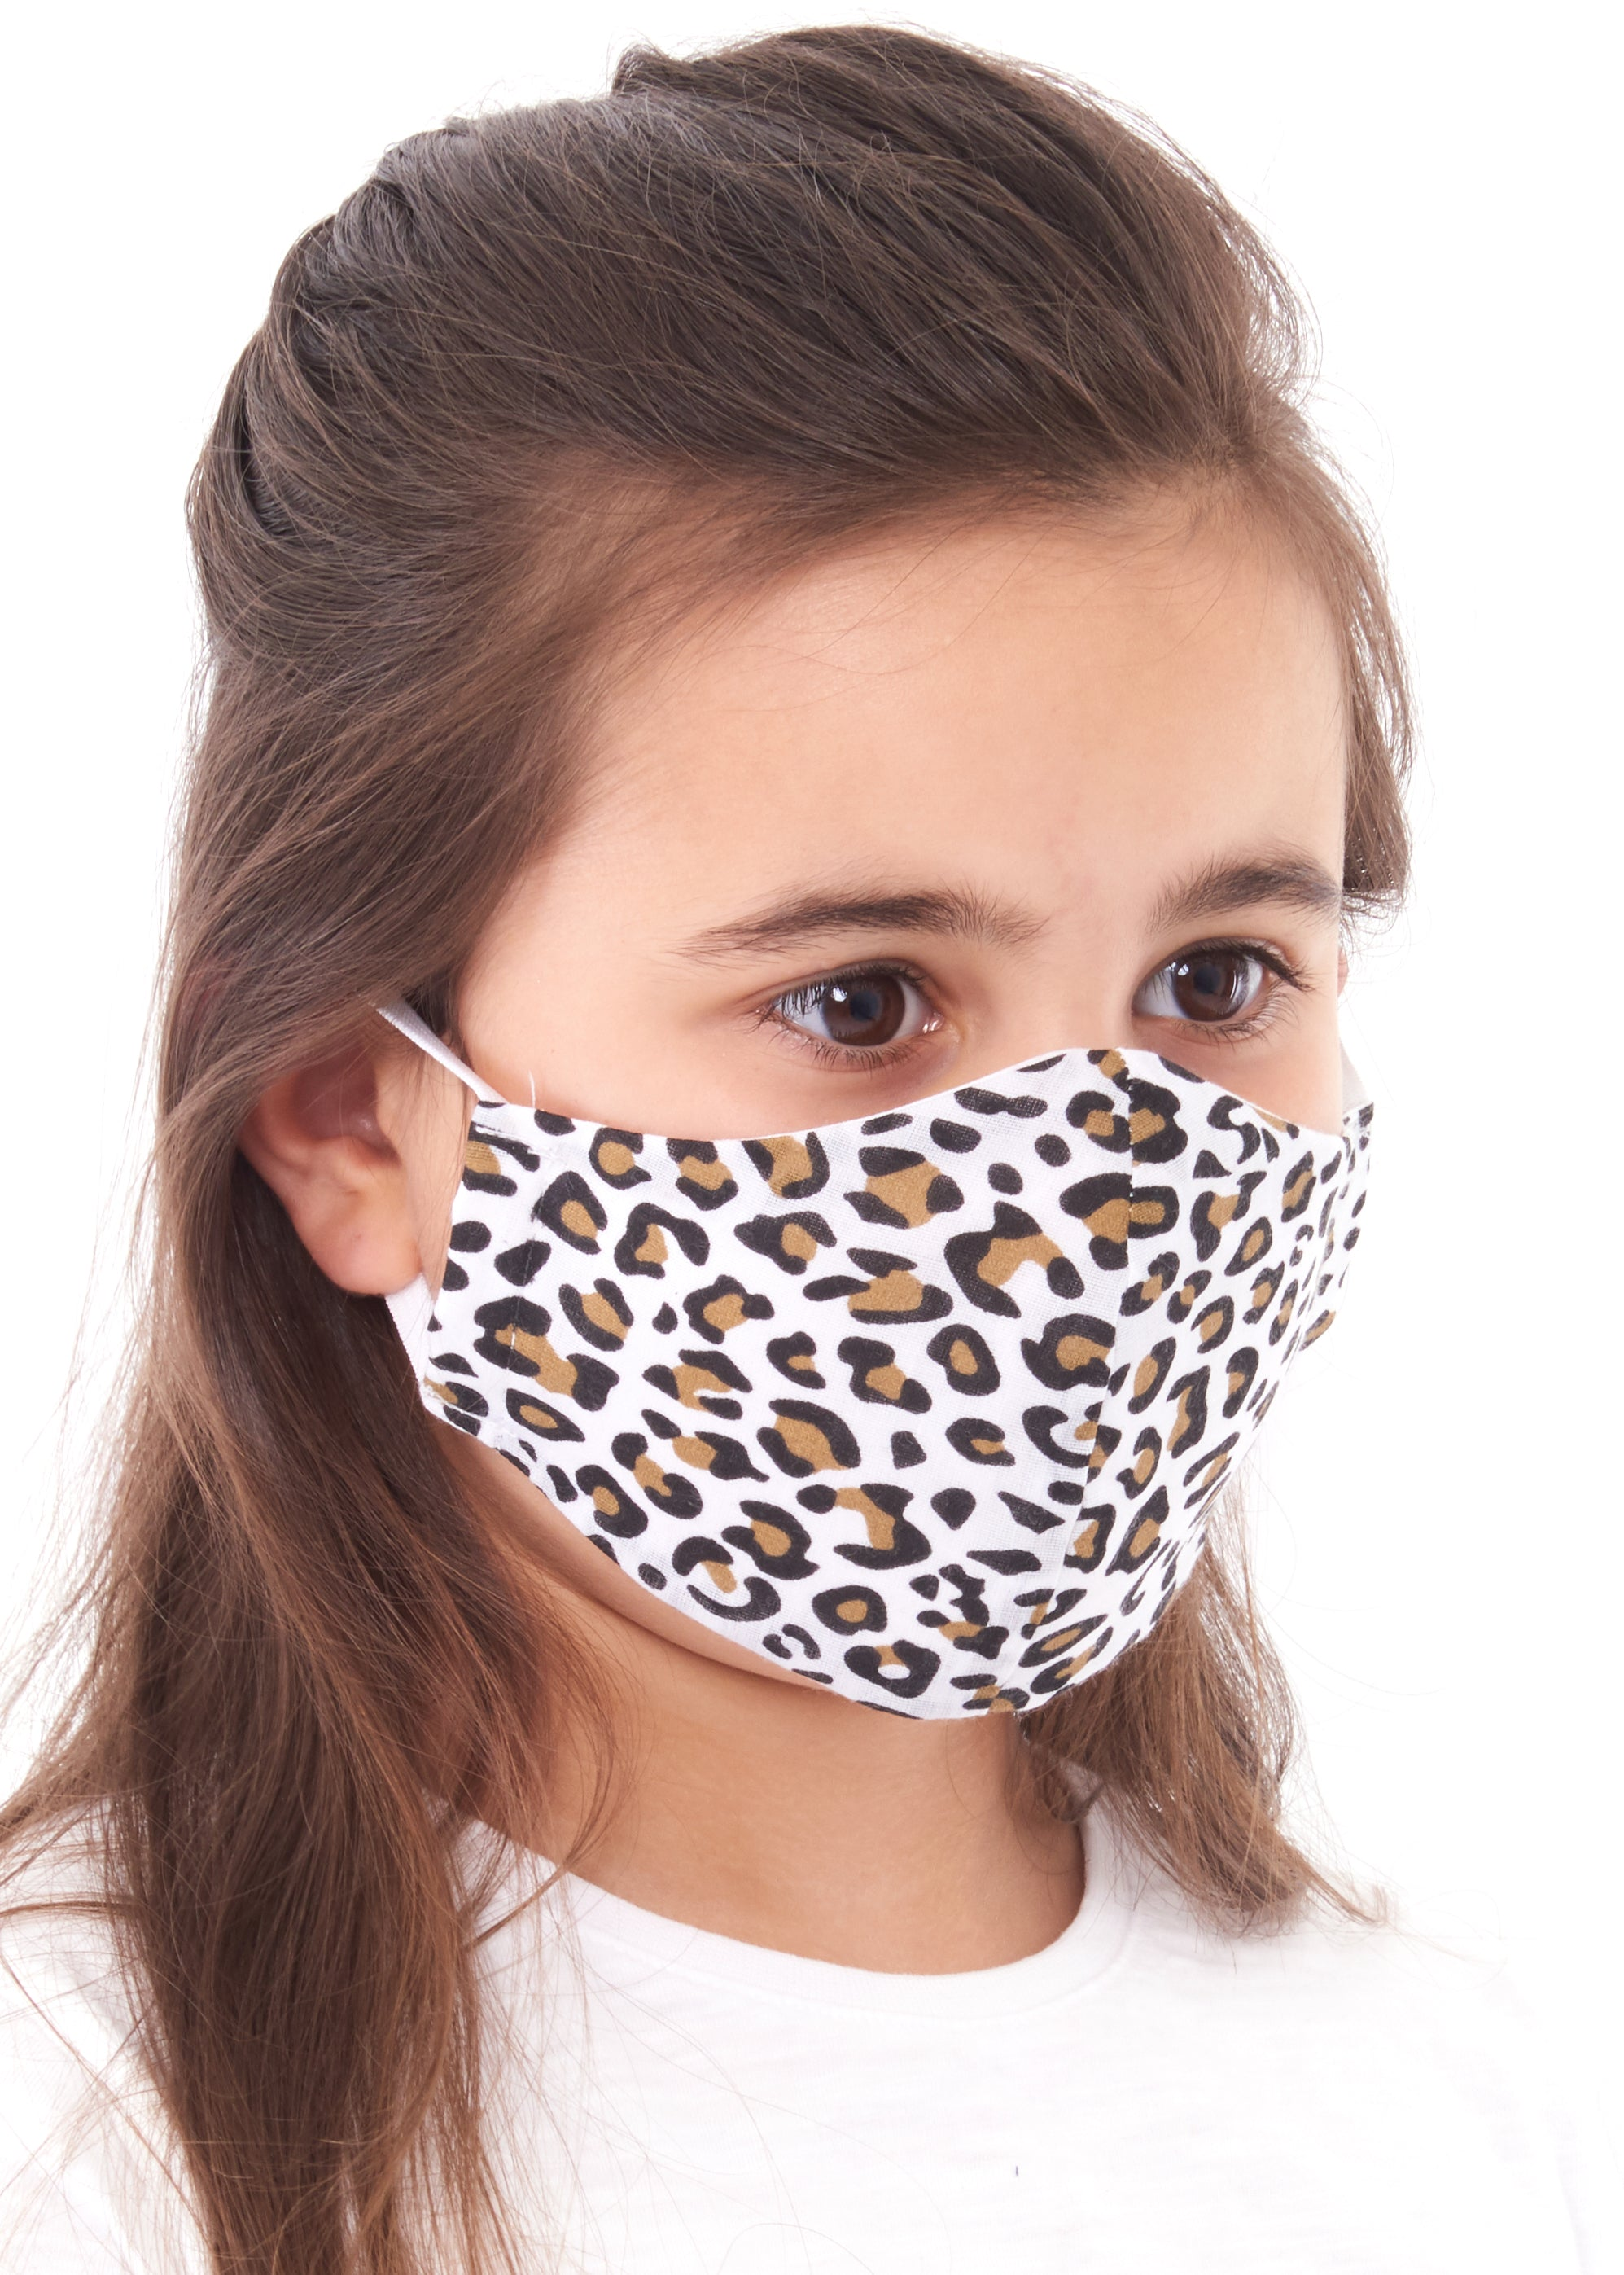 childs leopard print charity face mask, charity masks